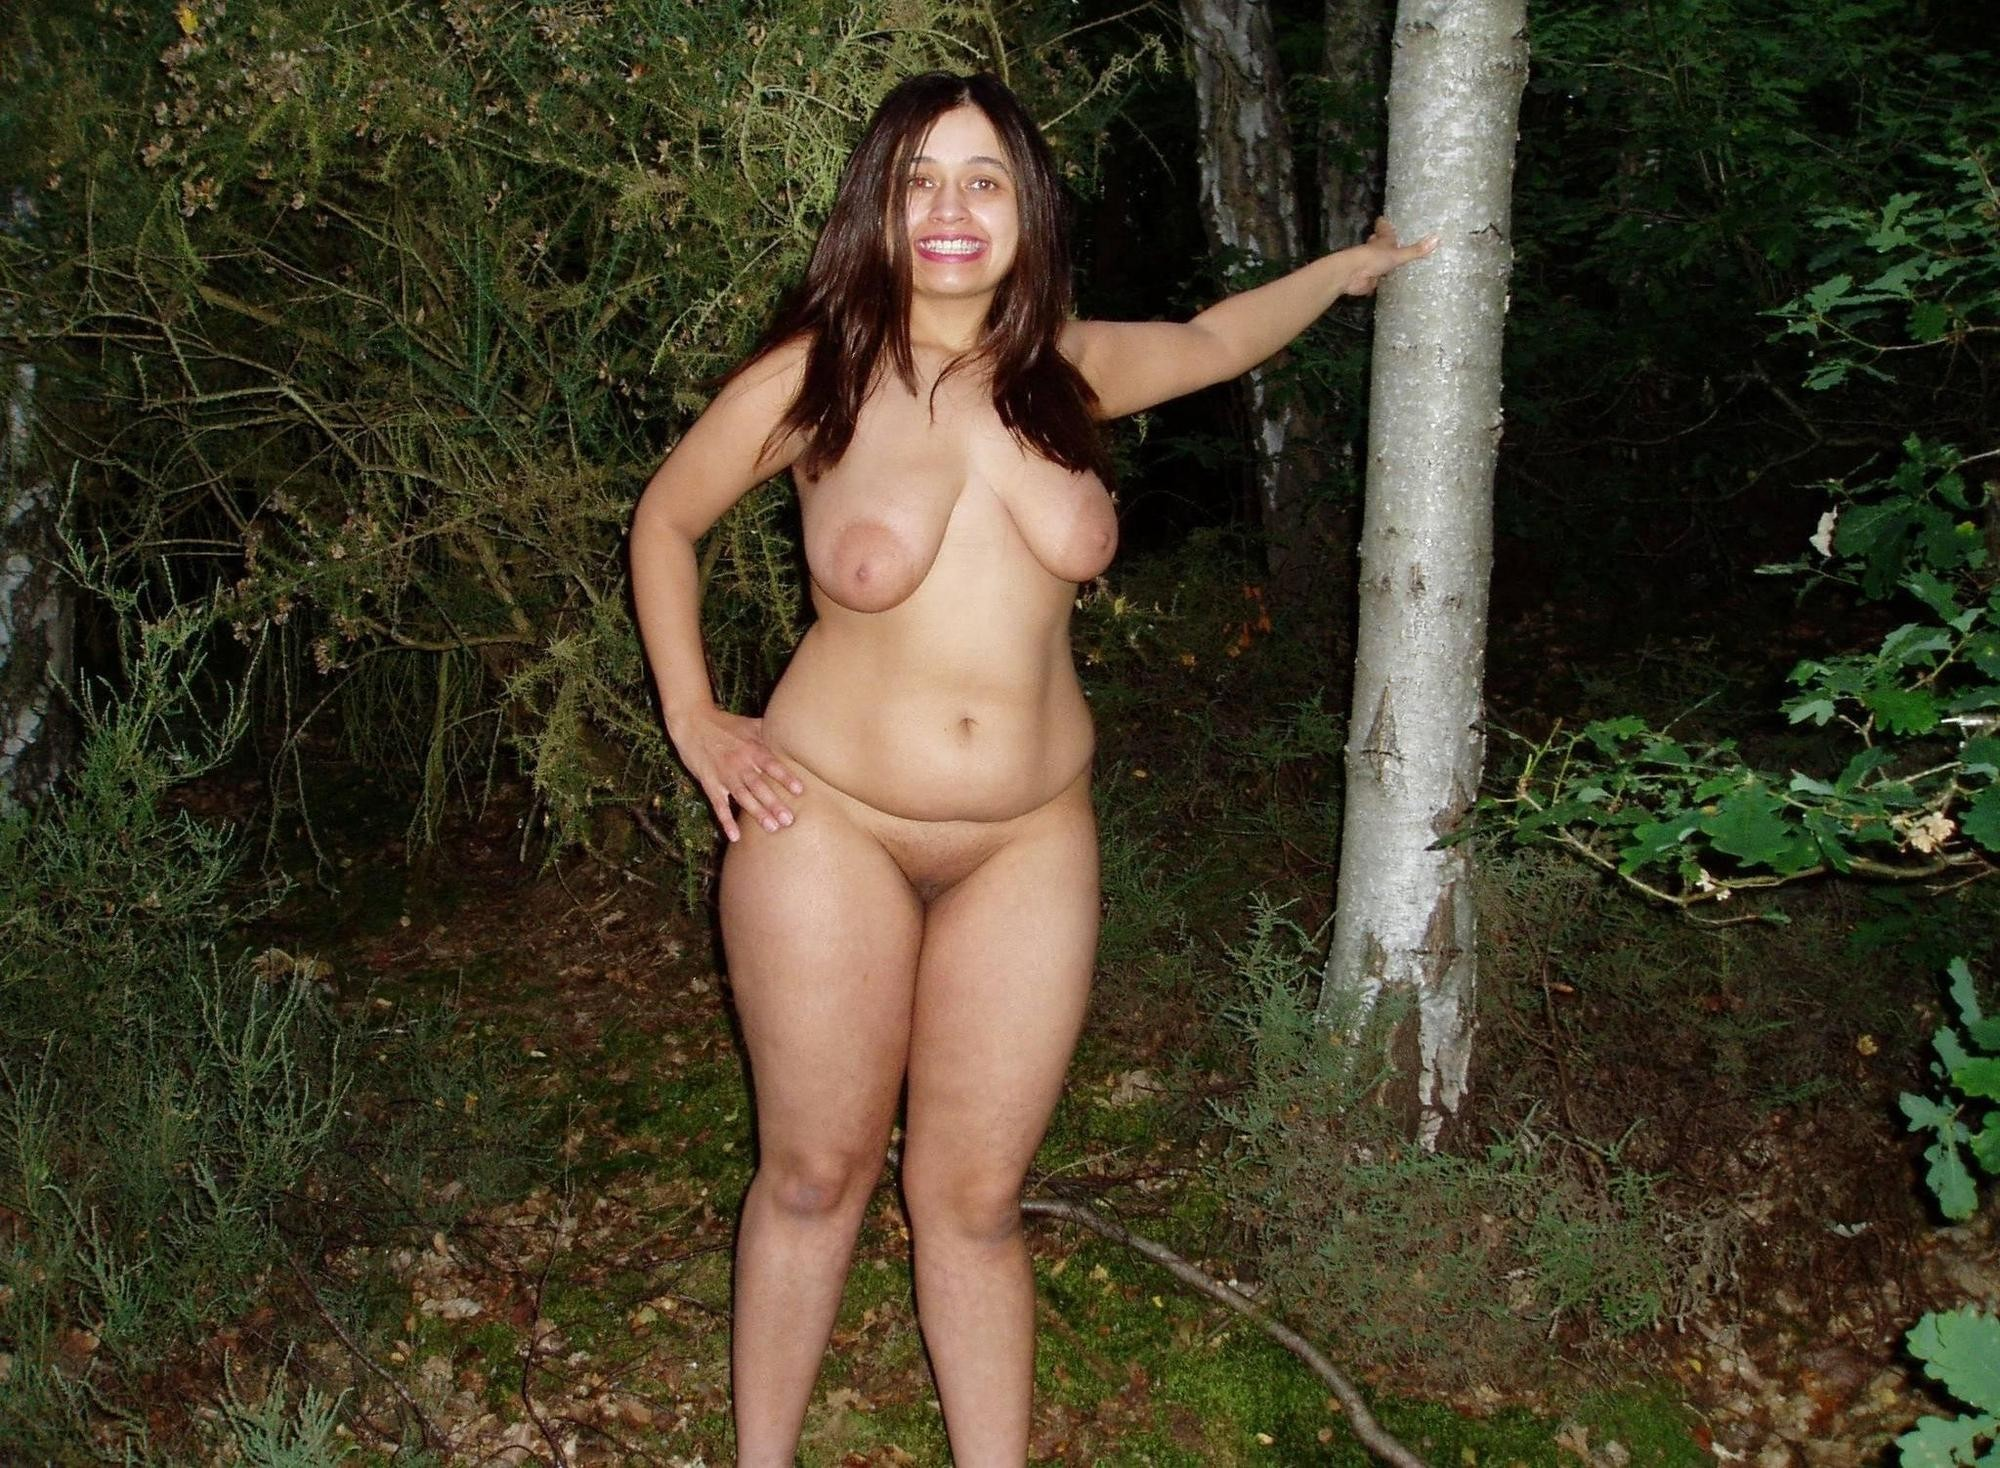 Nude Chubby Redhead Stripping